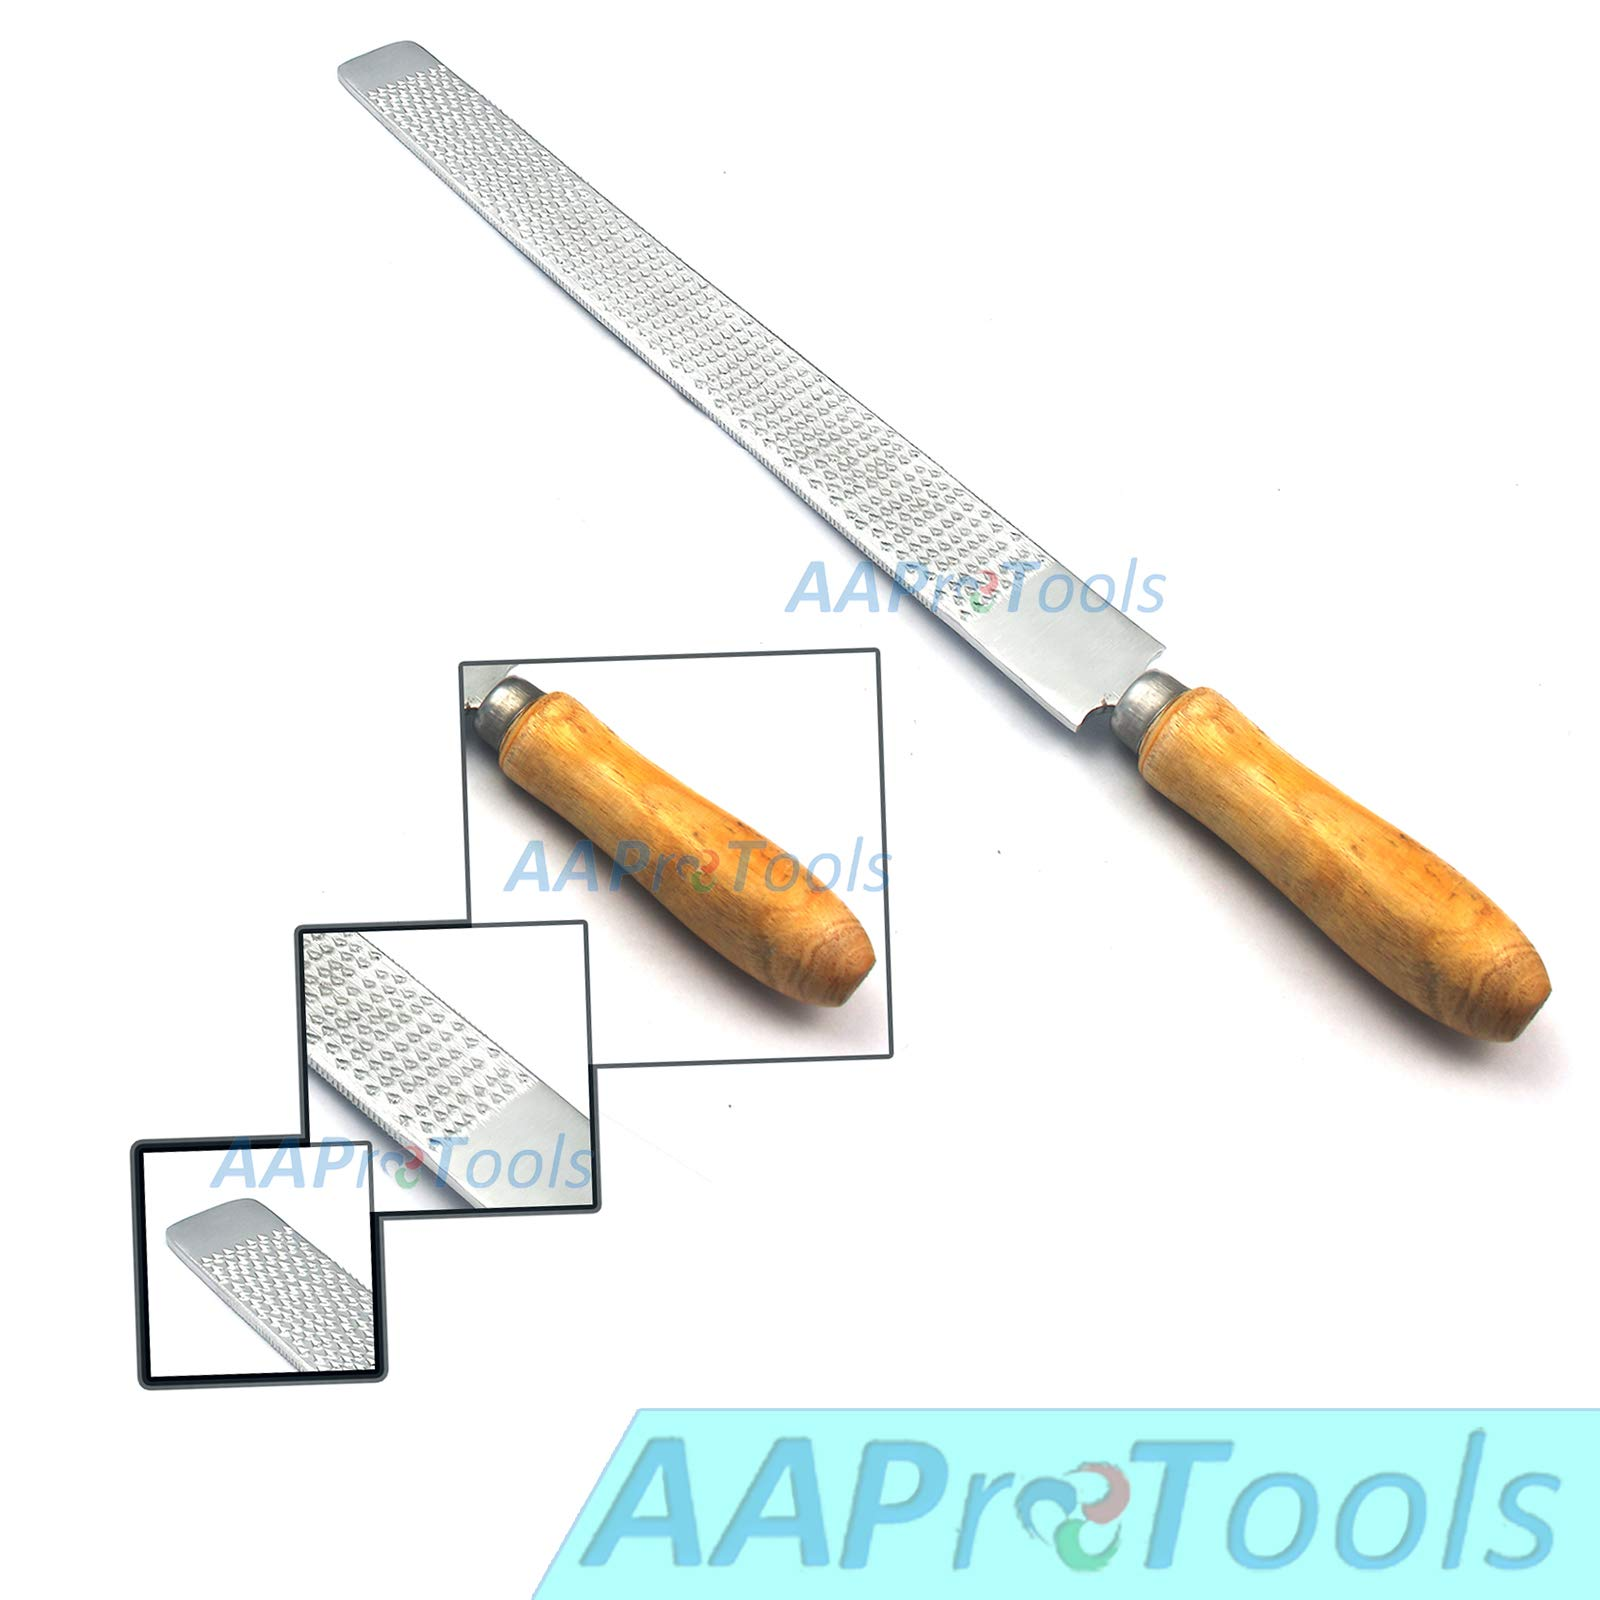 AAProTools Horse Hoof Rasp & File 14'' Tanged with Polished Wooden Handle